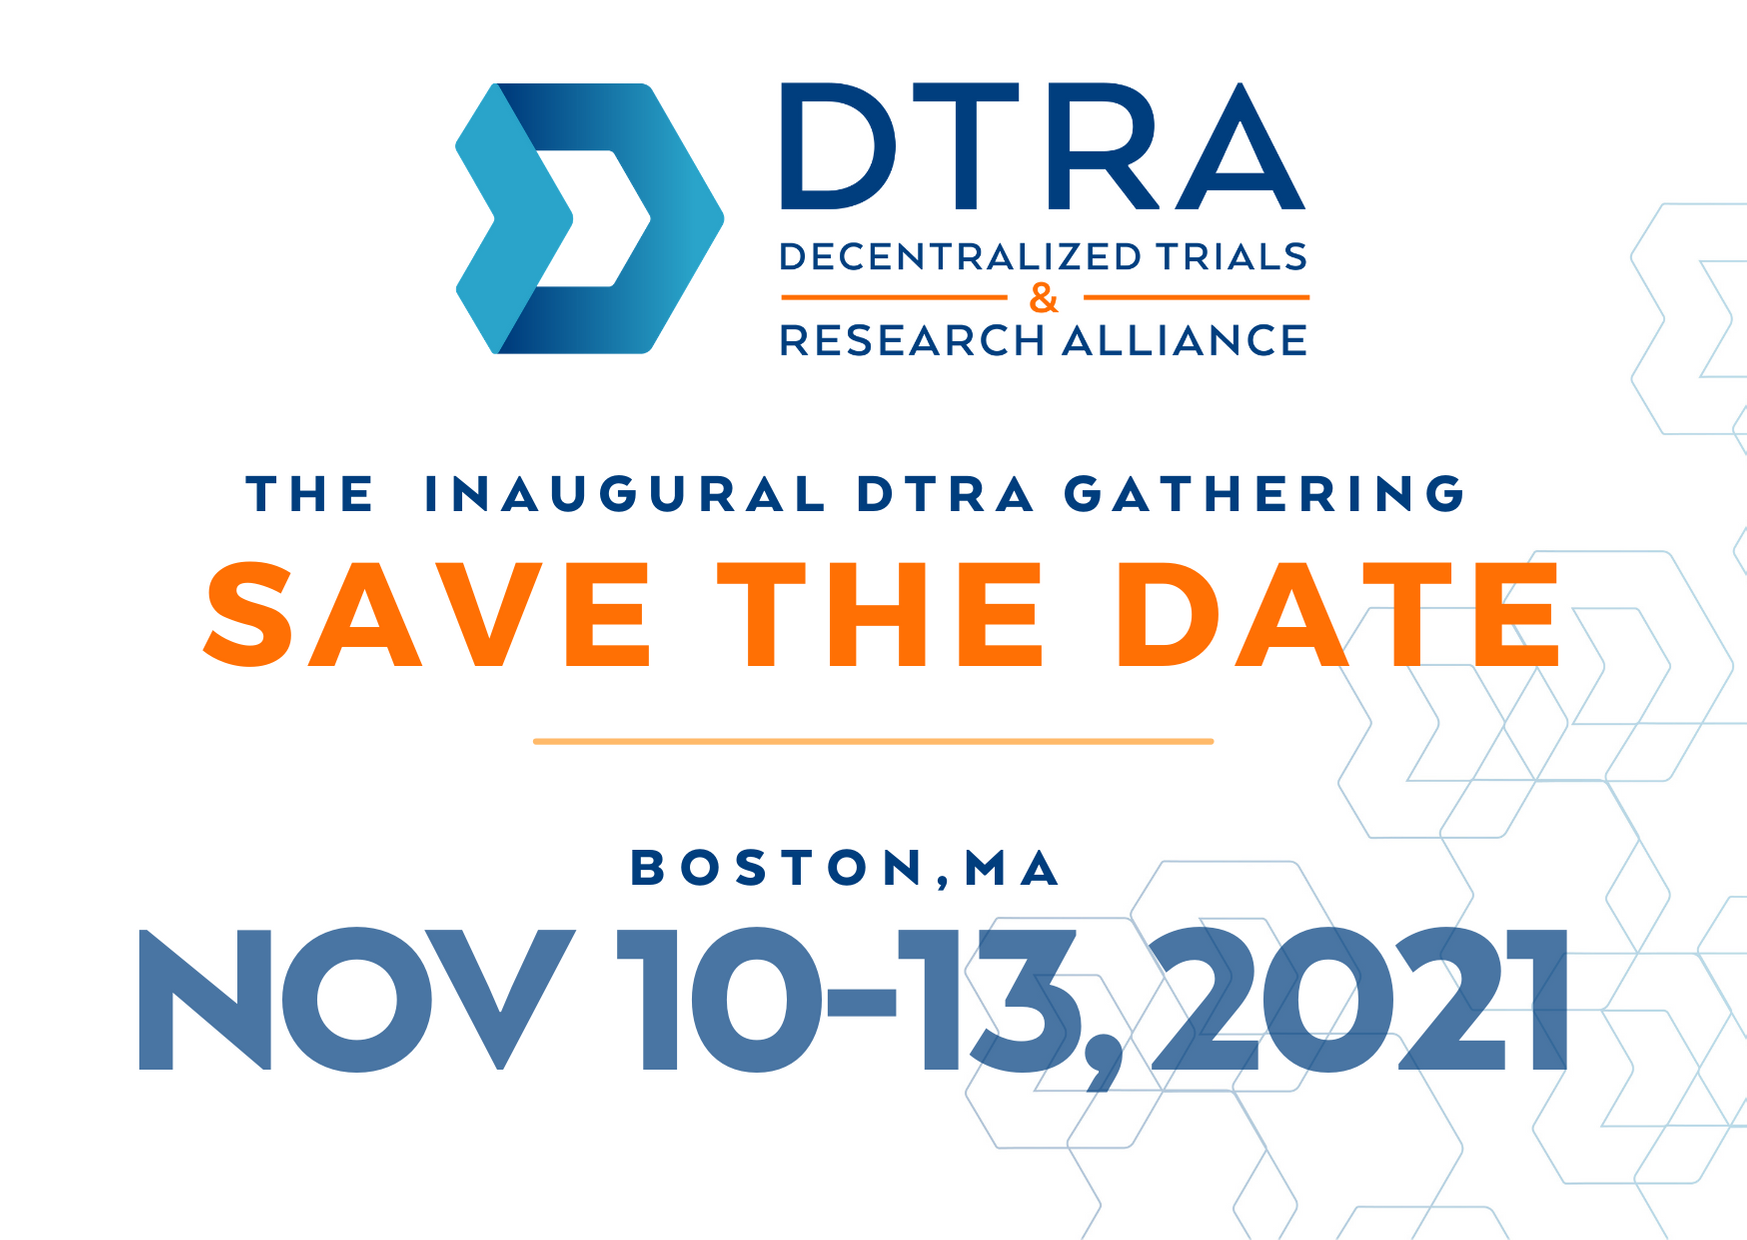 DTRA 2021 Save the Date